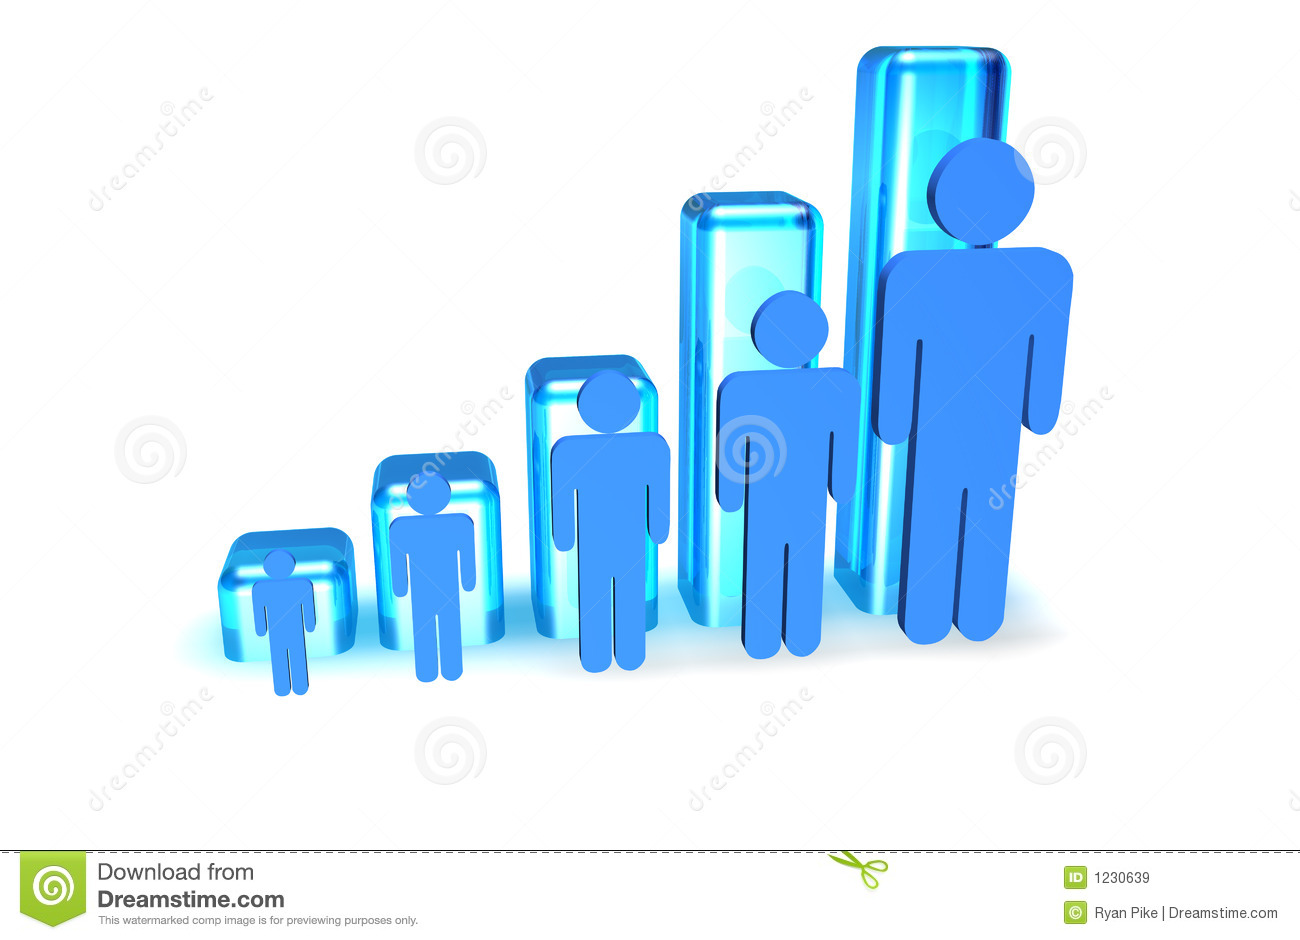 People Graph Royalty Free Stock Images - Image: 1230639